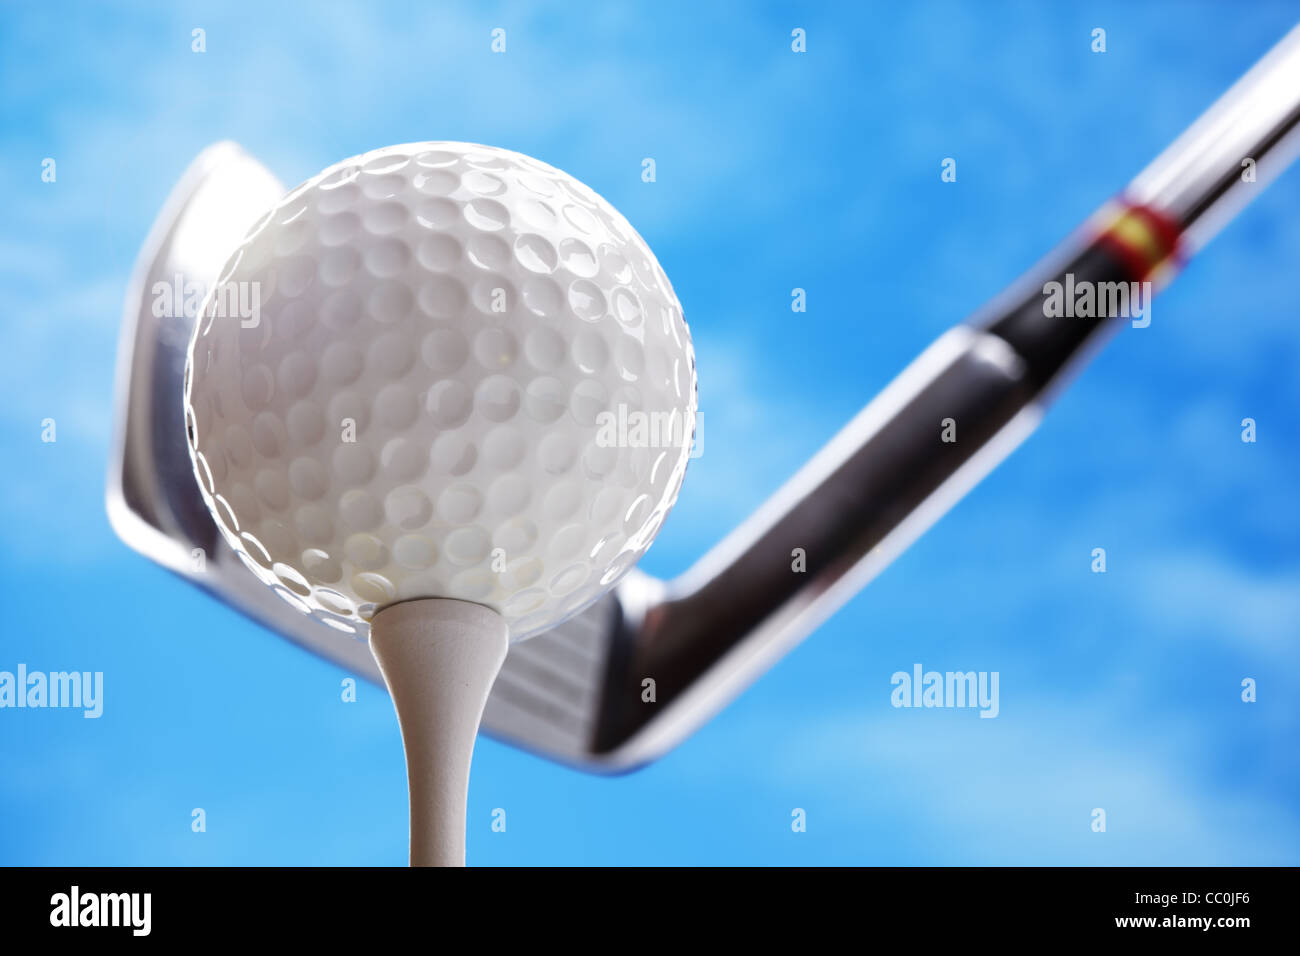 La pallina da golf e club Immagini Stock